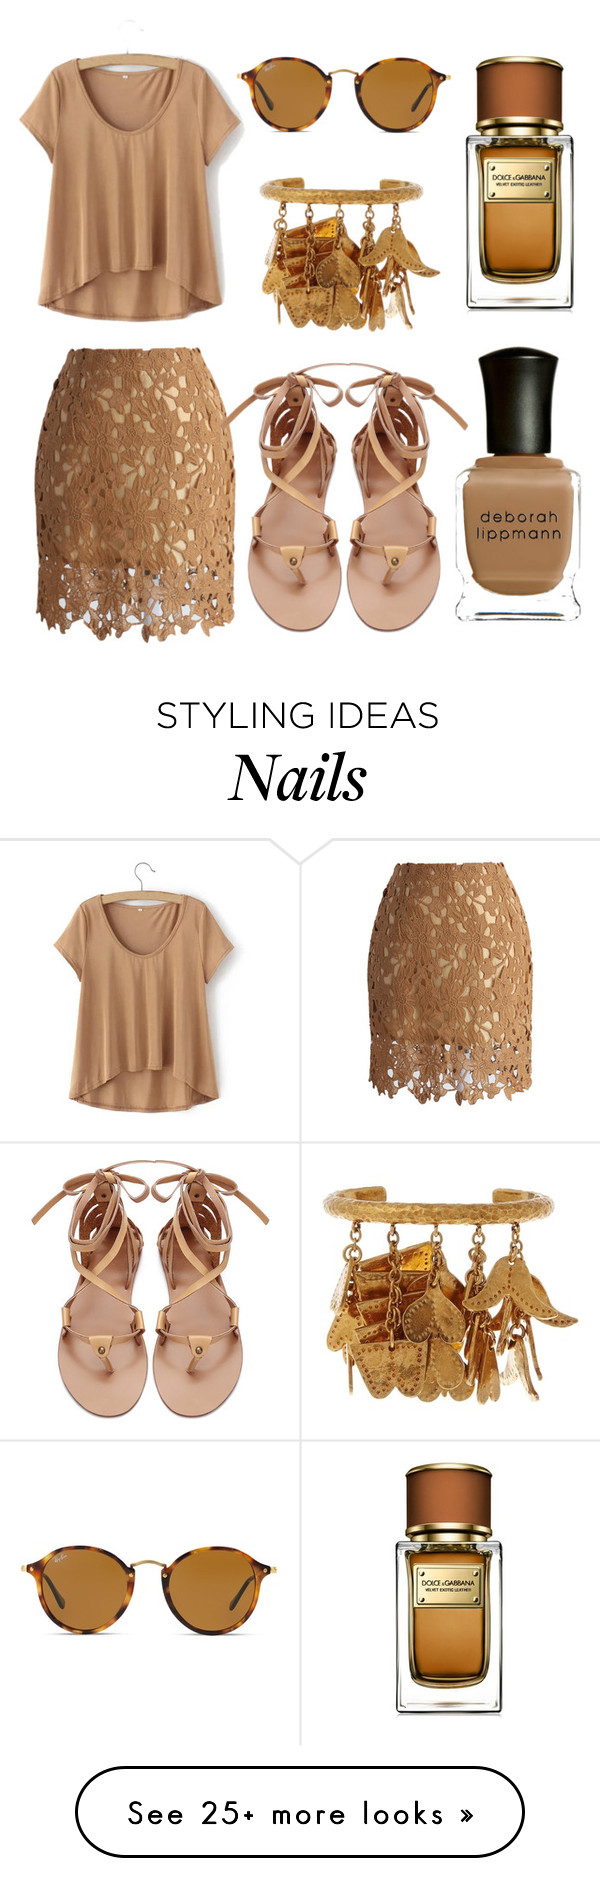 """Earth tones"" by ladybug71181 on Polyvore featuring Chicwish, Chloé, Ray-Ban, Dolce&Gabbana and Deborah Lippmann"